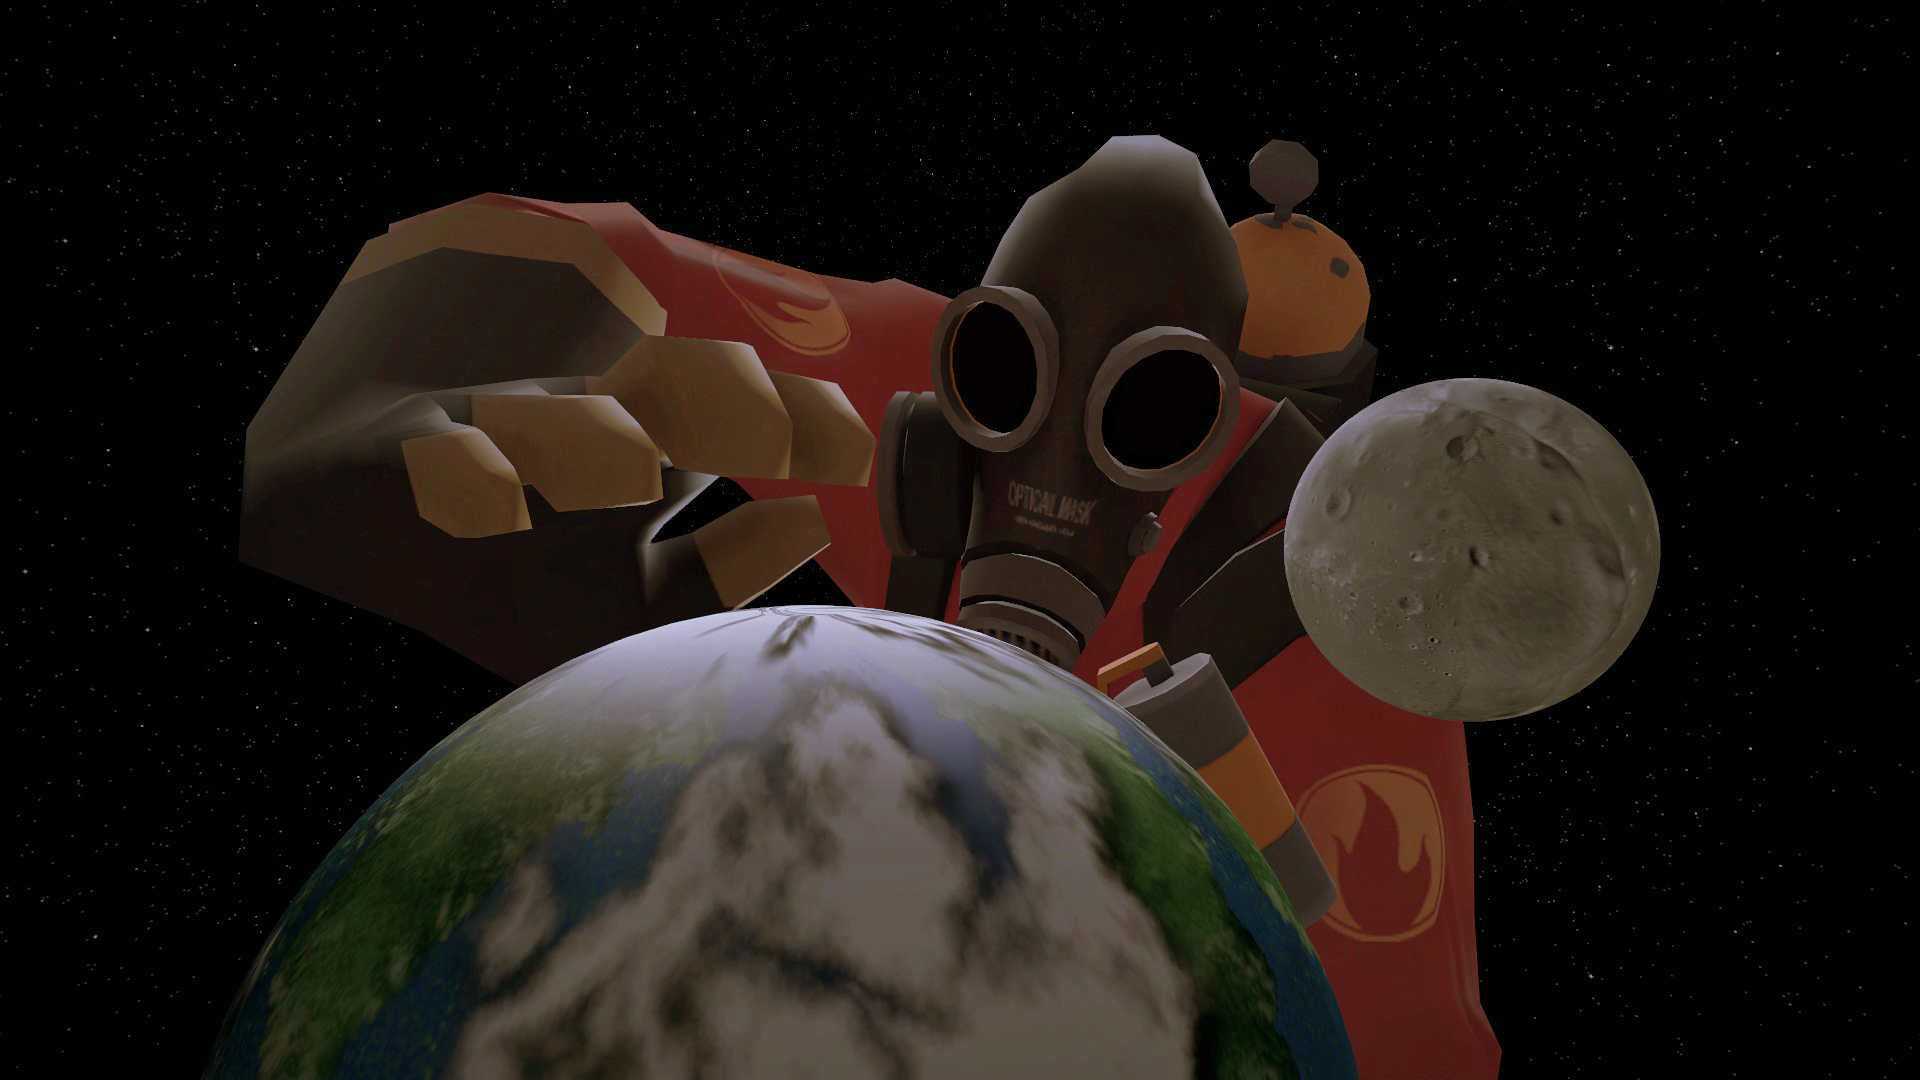 Pyro Destroyer of the lost planets